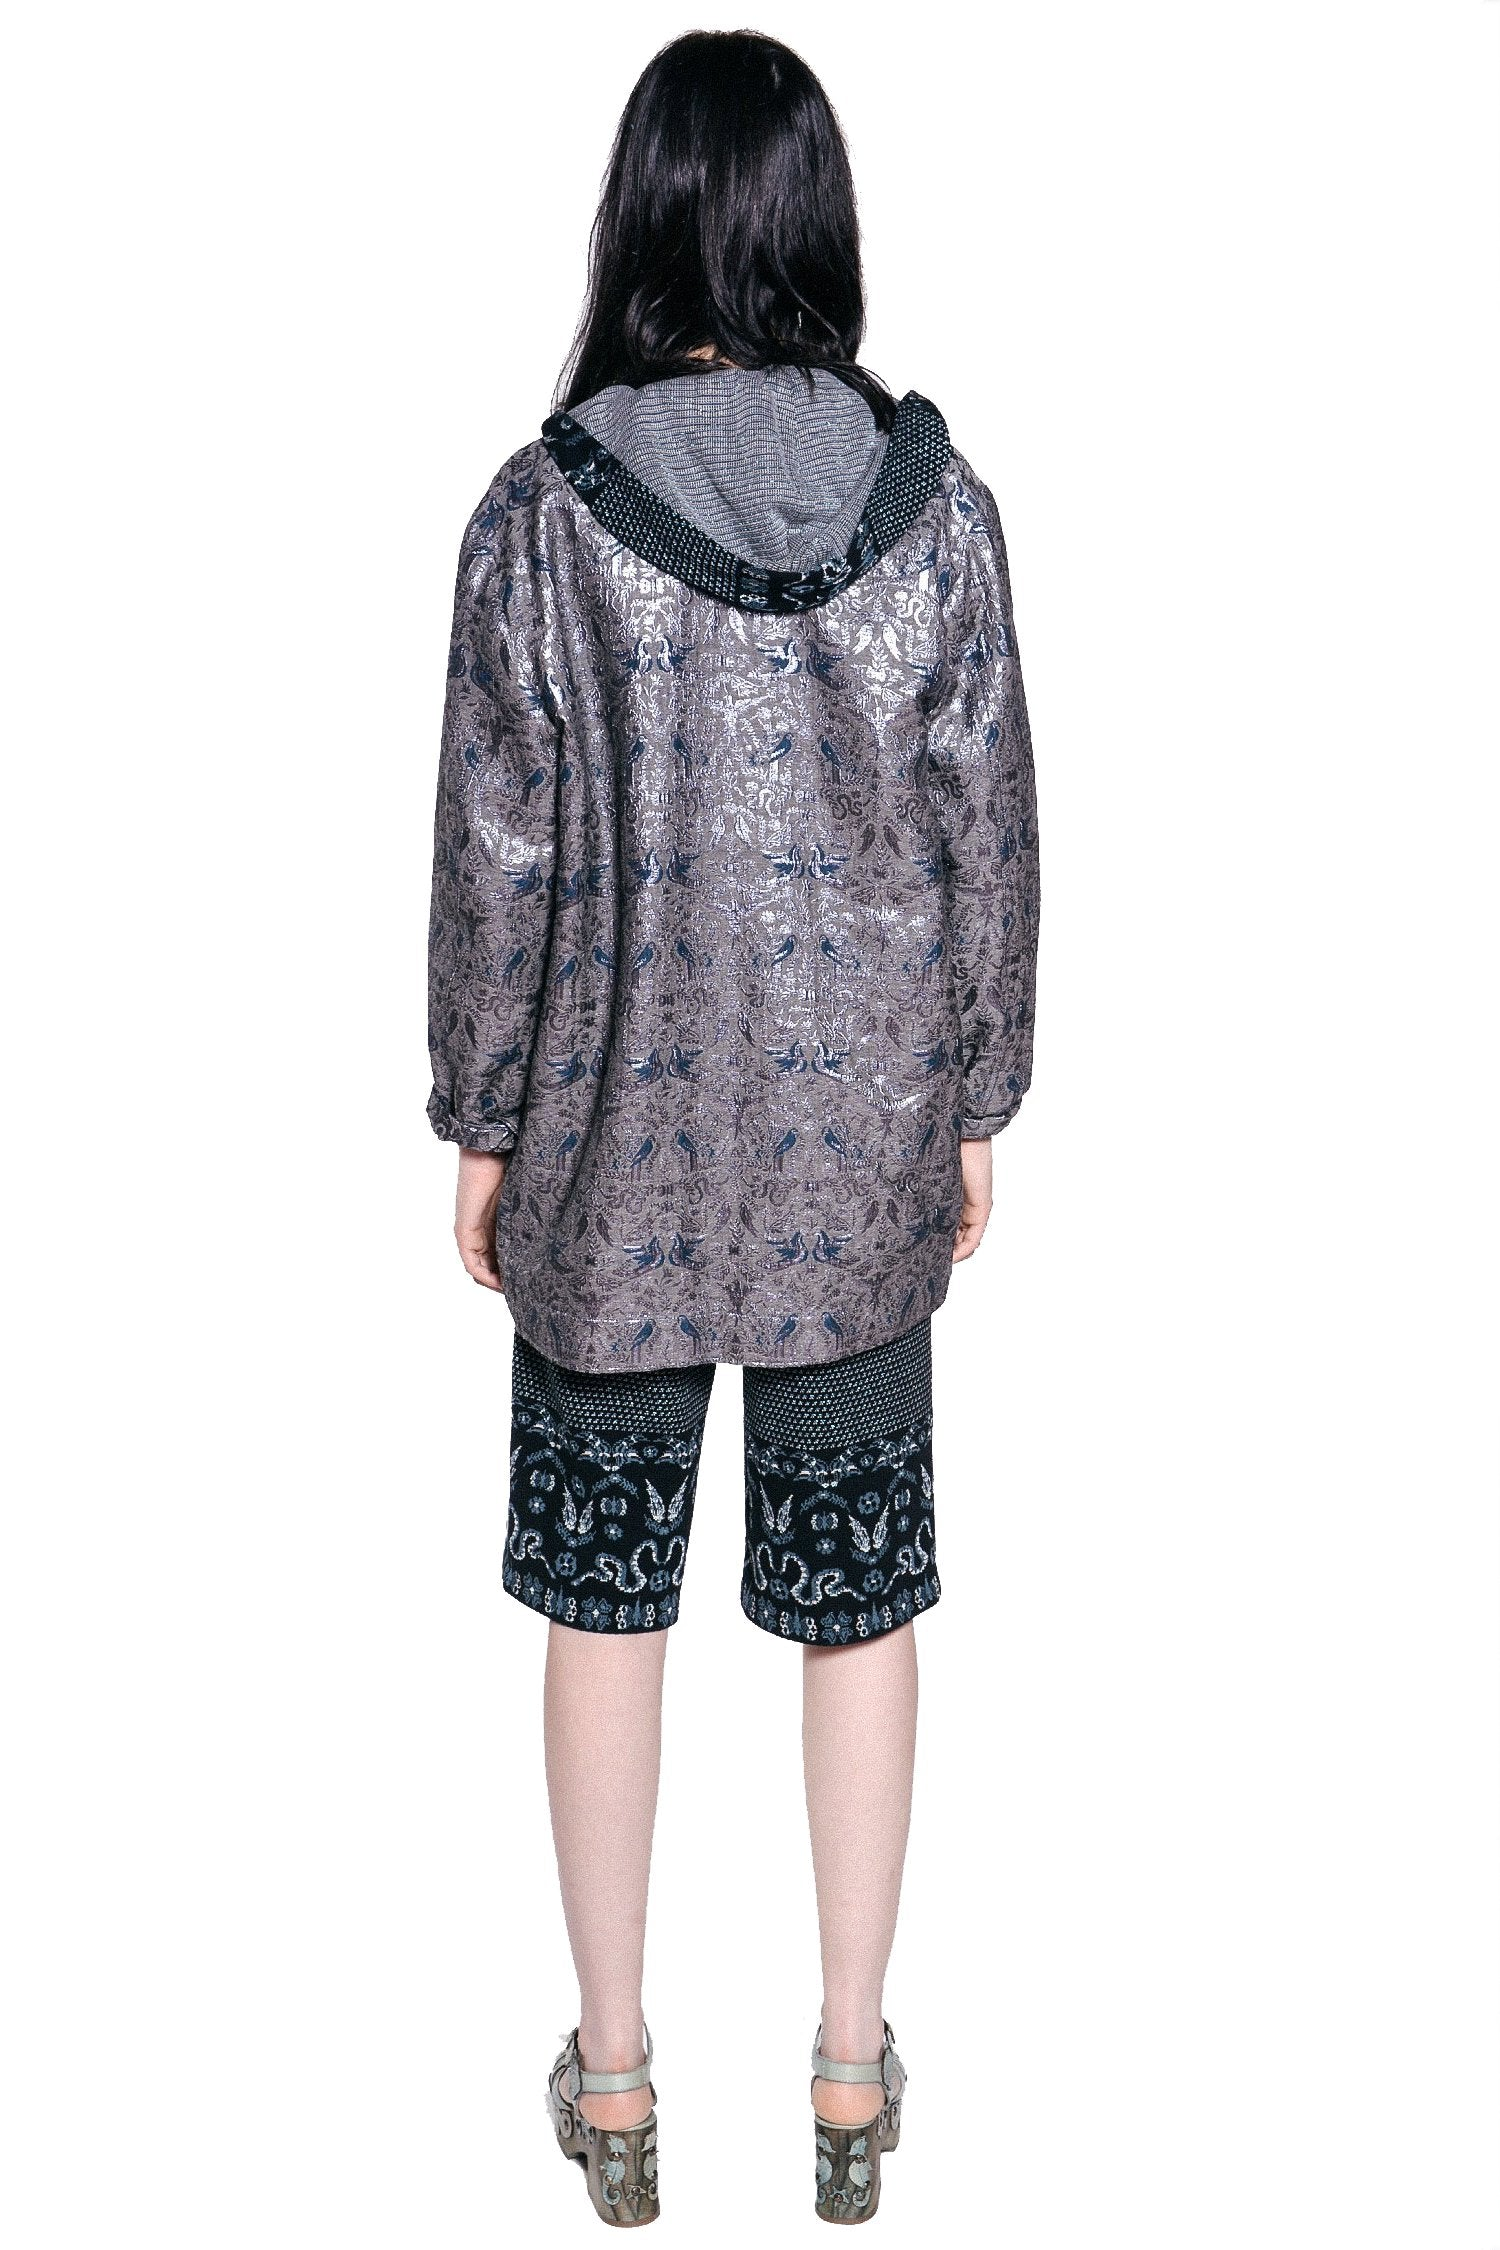 Garden Of Eden Jacquard Coat